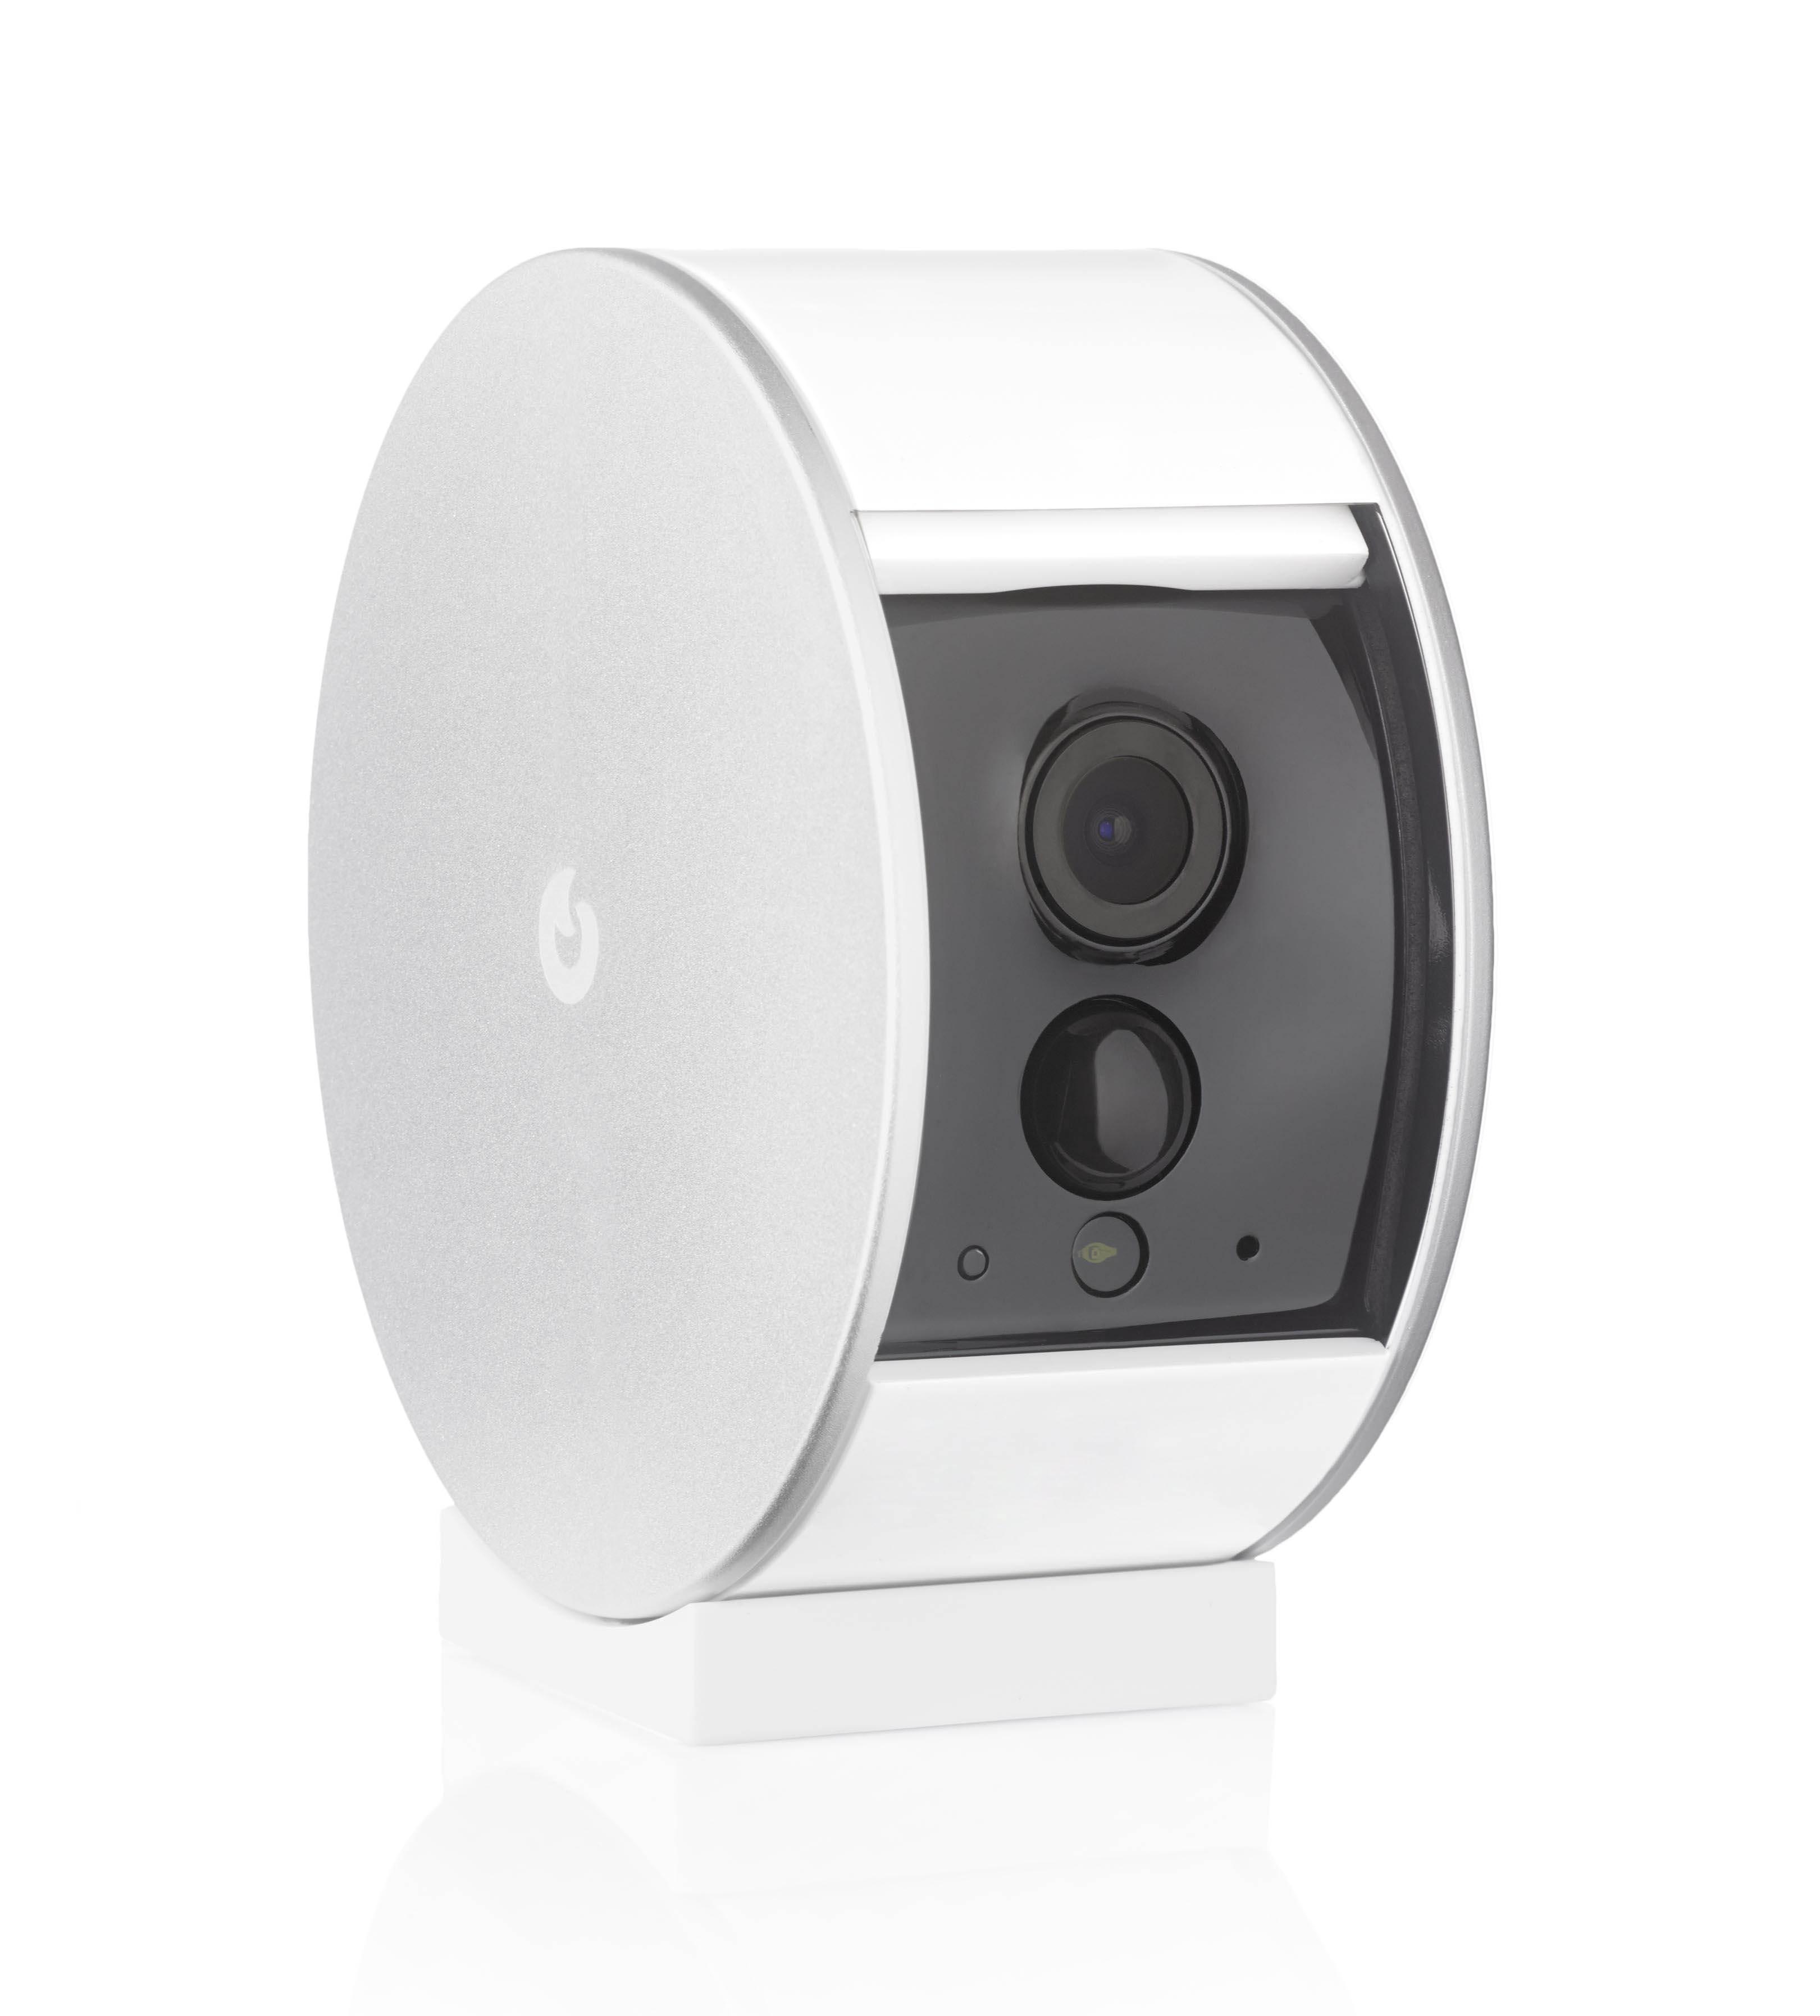 Myfox Security Camera 1